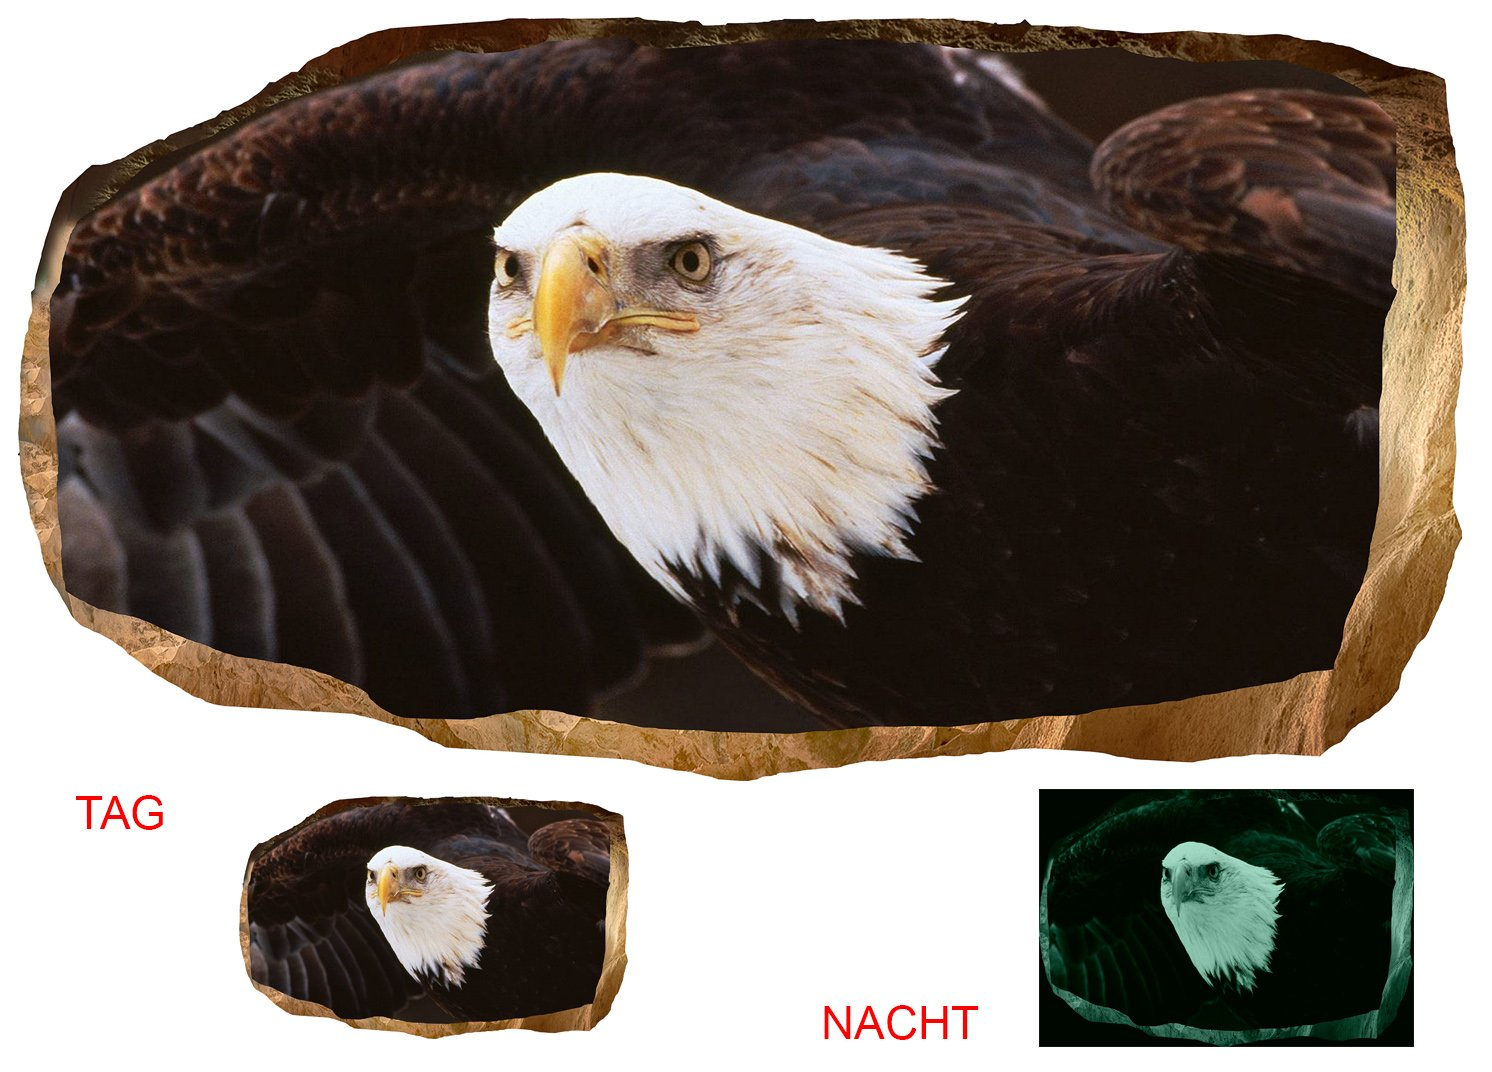 Startonight 3D Mural Wall Art Photo Decor American Eagle II Amazing Dual View Surprise Large Wall Mural Wallpaper for Living or Bedroom Room America Wall Art 120 x 220 cm by Mural Wall Art